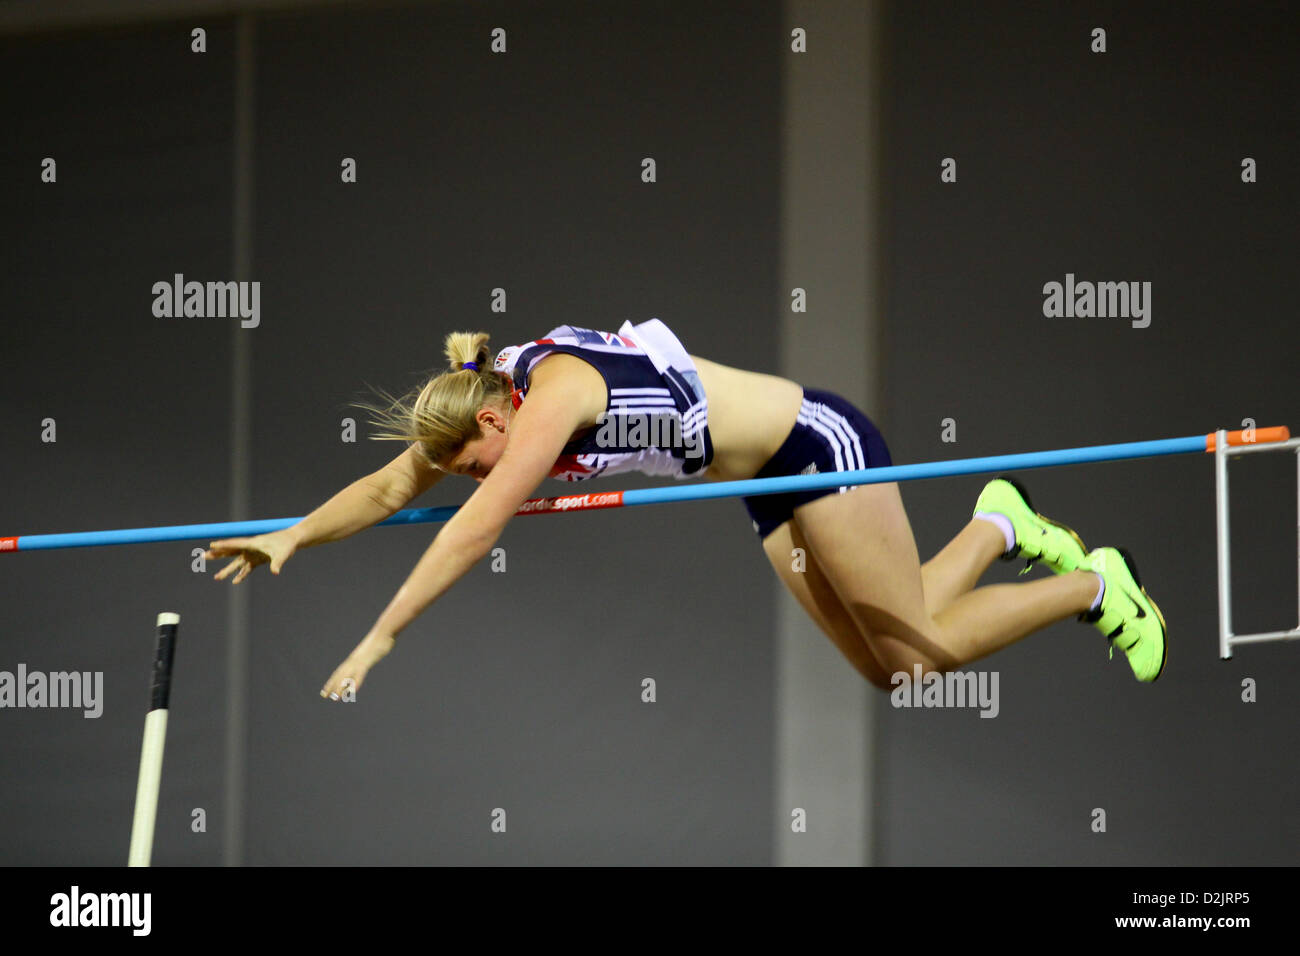 Holly Bleasdale GBR Great Britain winner of women's pole vault - 4.6m. 26.01.2013 British Athletics Glasgow - Stock Image